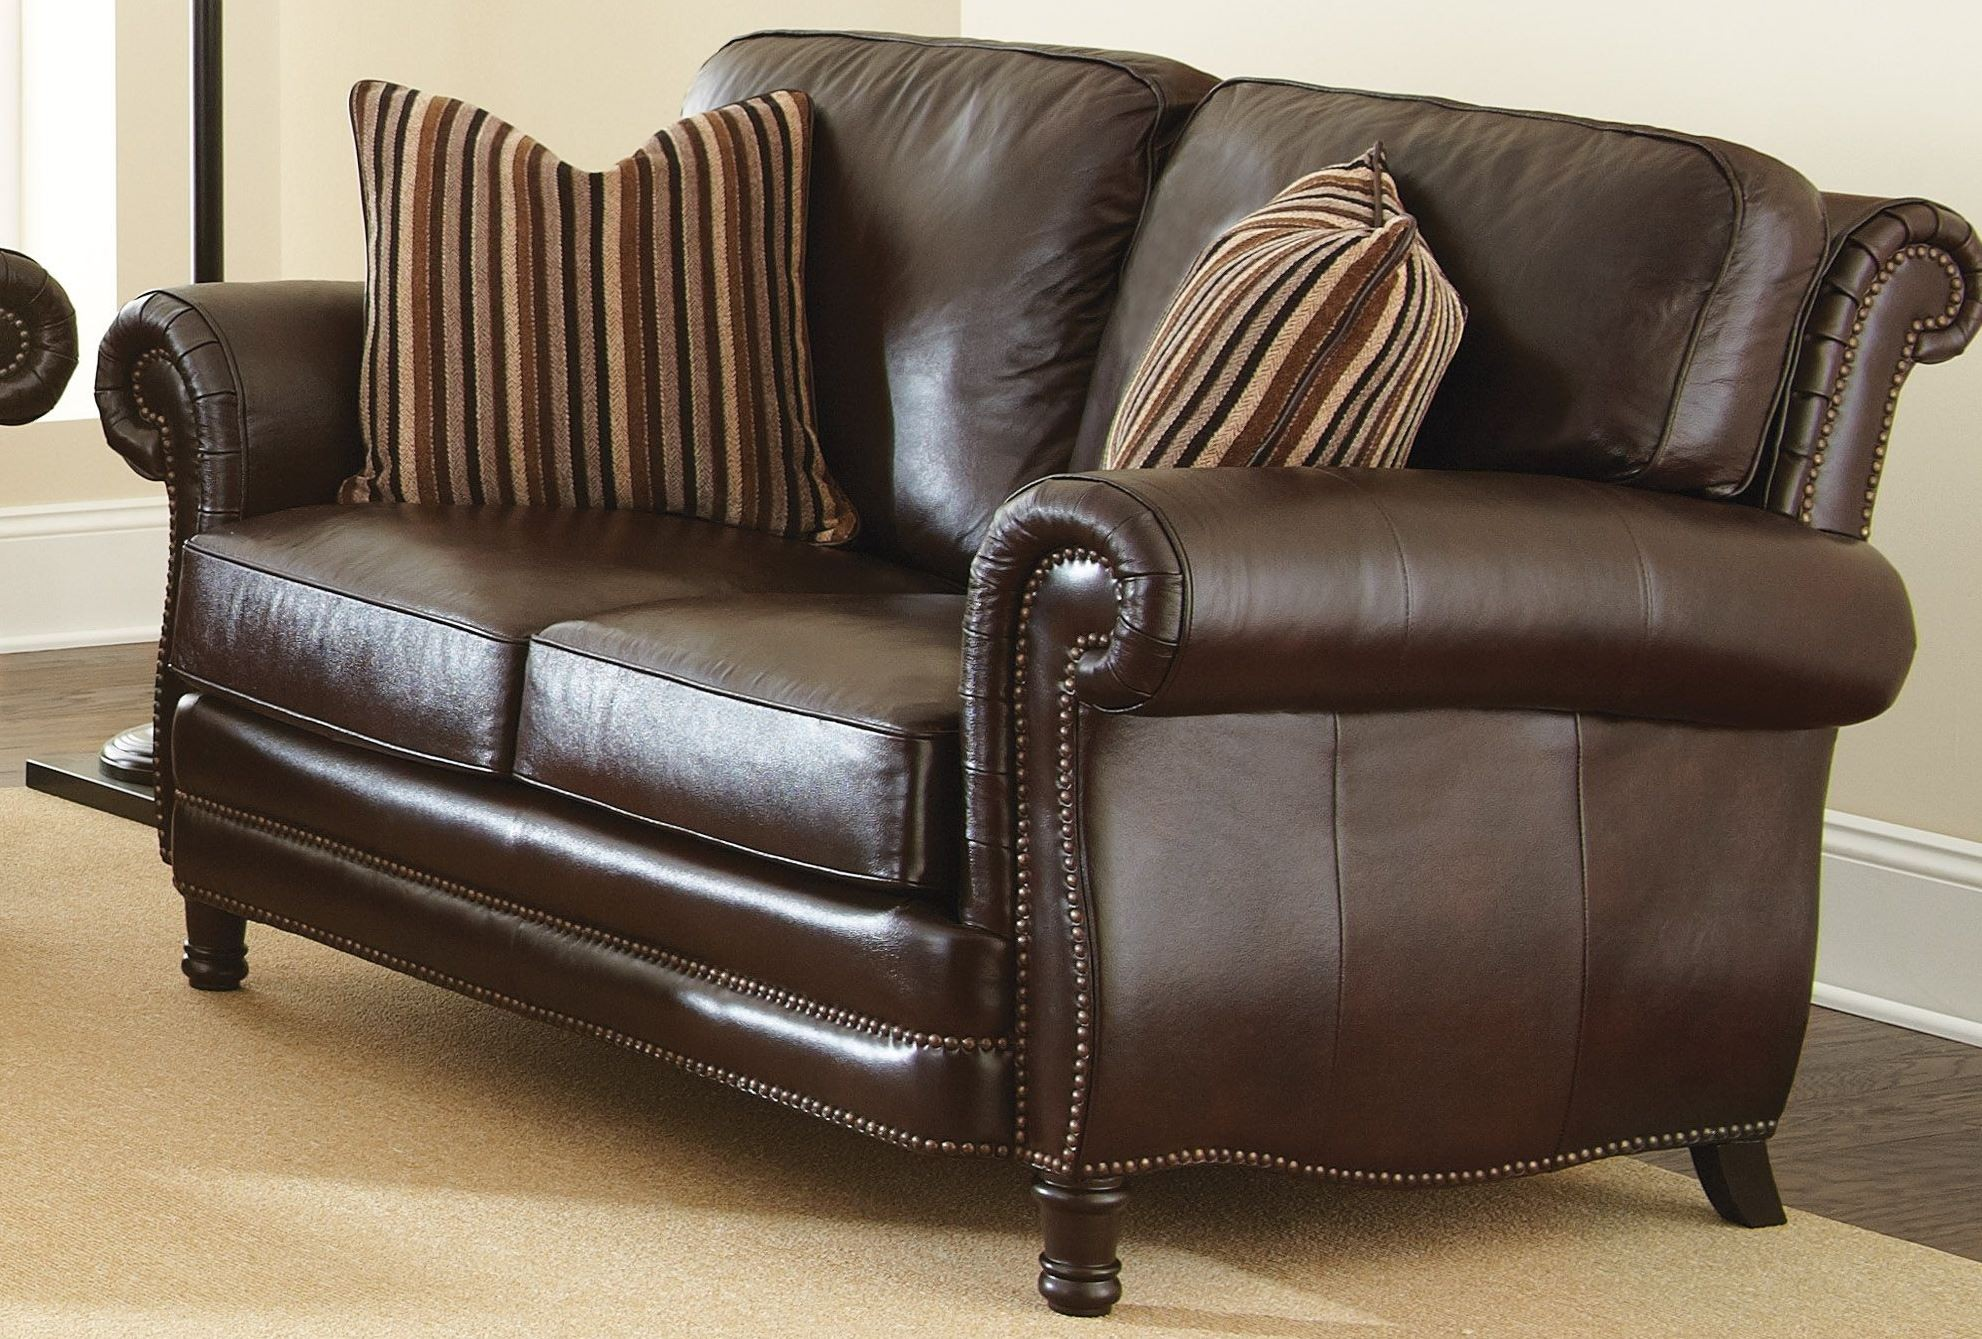 Chateau Top Grain Leather Loveseat With 2 Accent Pillows